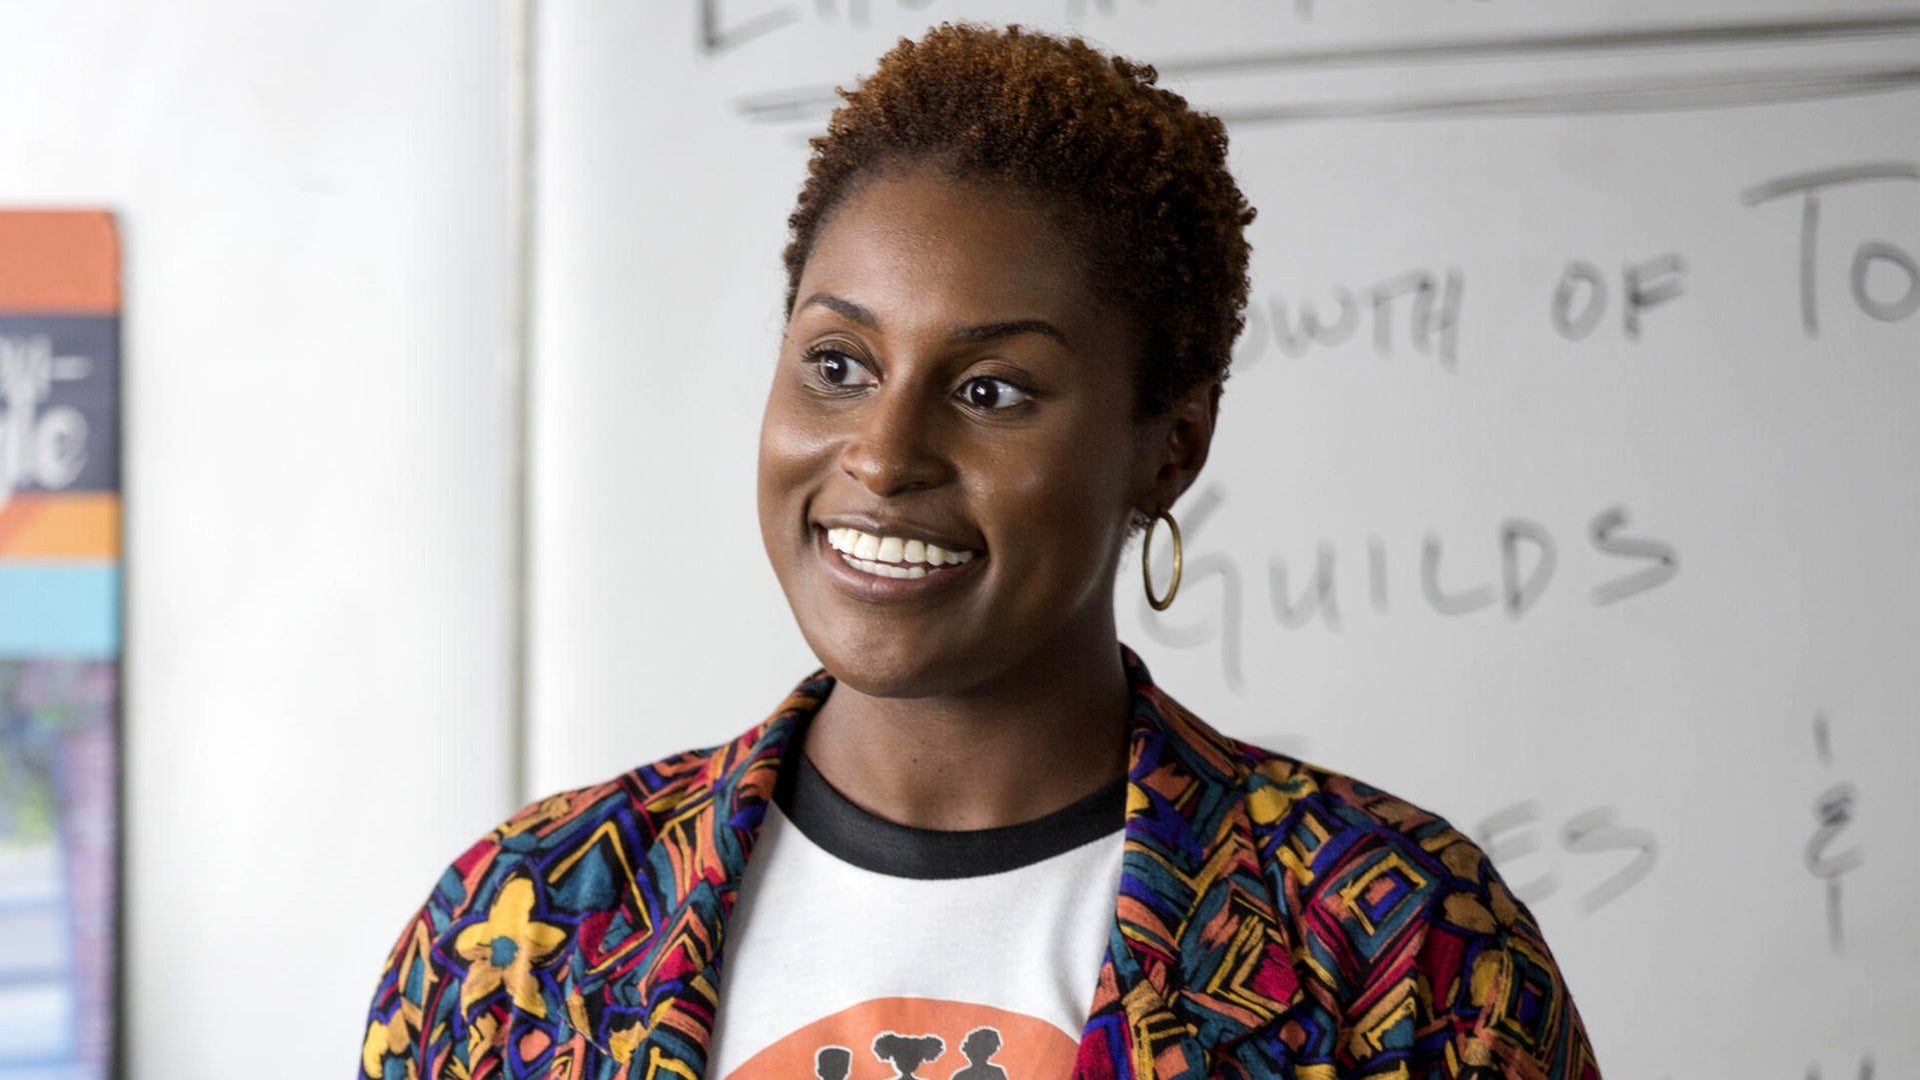 President Obama Watches Issa Rae's 'Insecure' Like the Rest of Us!